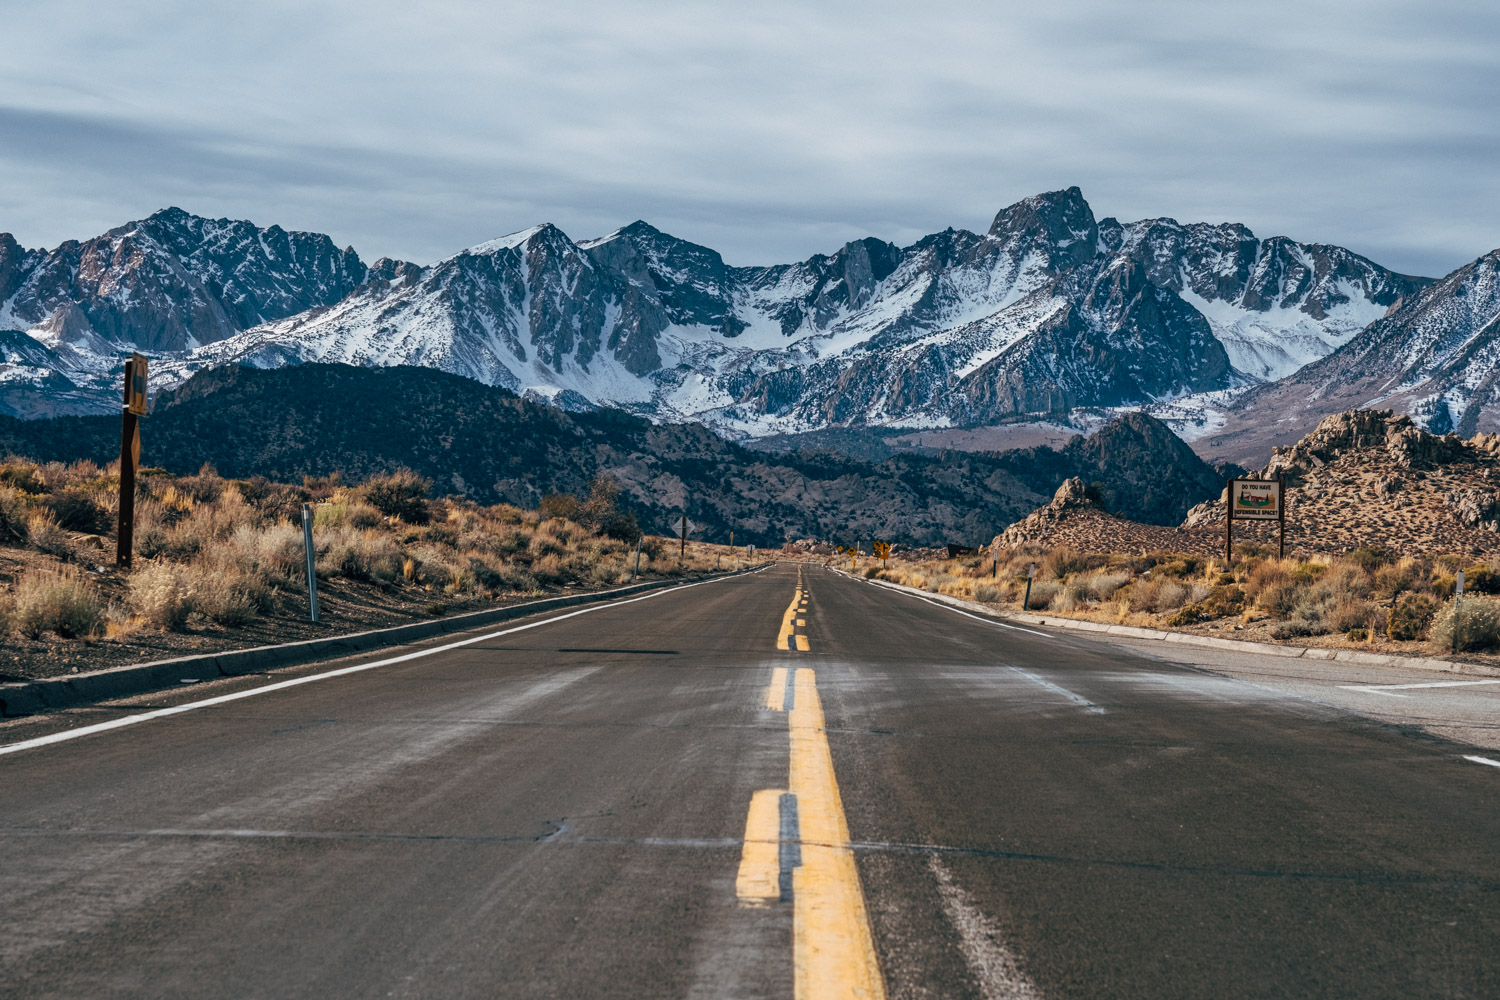 Eastern Sierras, CA. Books are like open roads taking us to fascinating journeys of discoveries...of our own selves, and of the world around us...